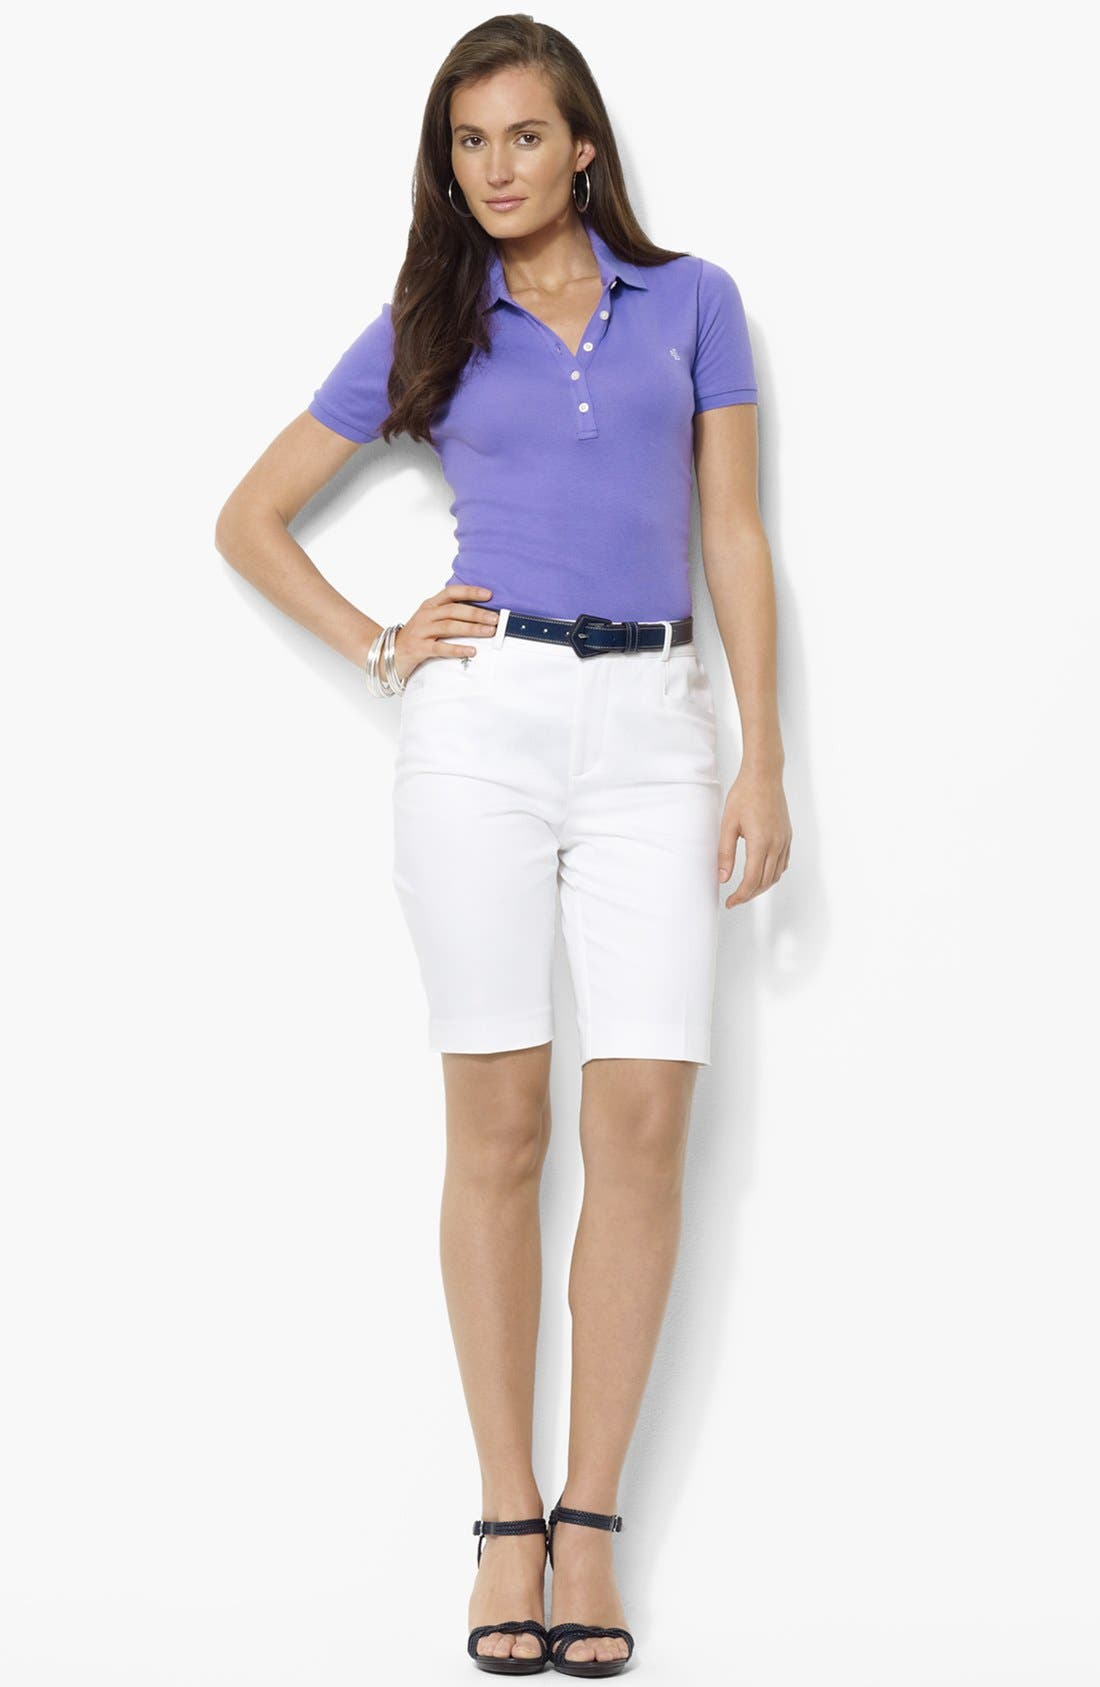 Alternate Image 1 Selected - Lauren Ralph Lauren Slimming Bermuda Shorts (Petite) (Online Only)